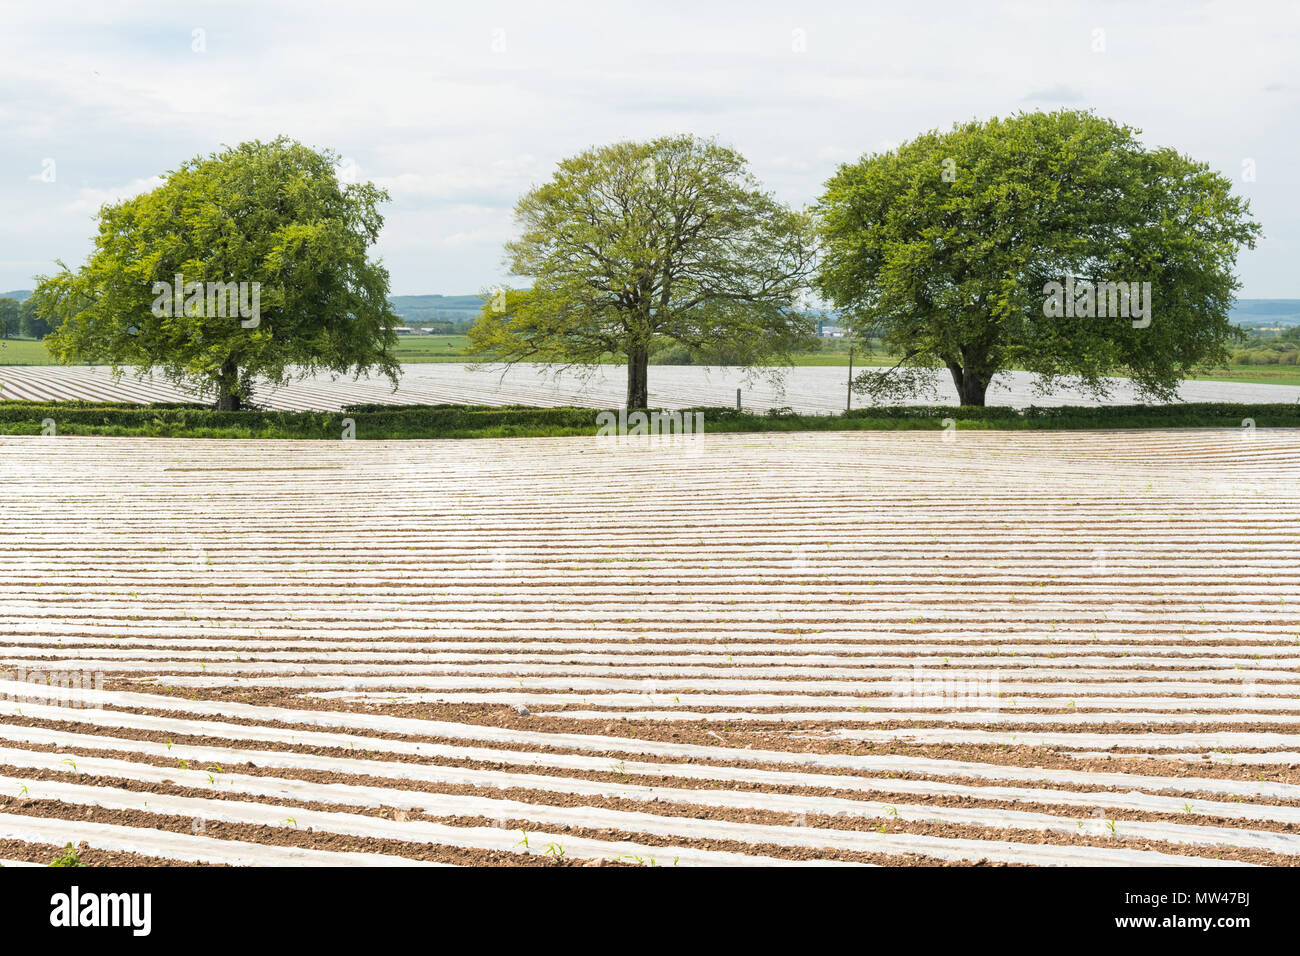 fields covered in rows of plastic mulch - uk Stock Photo